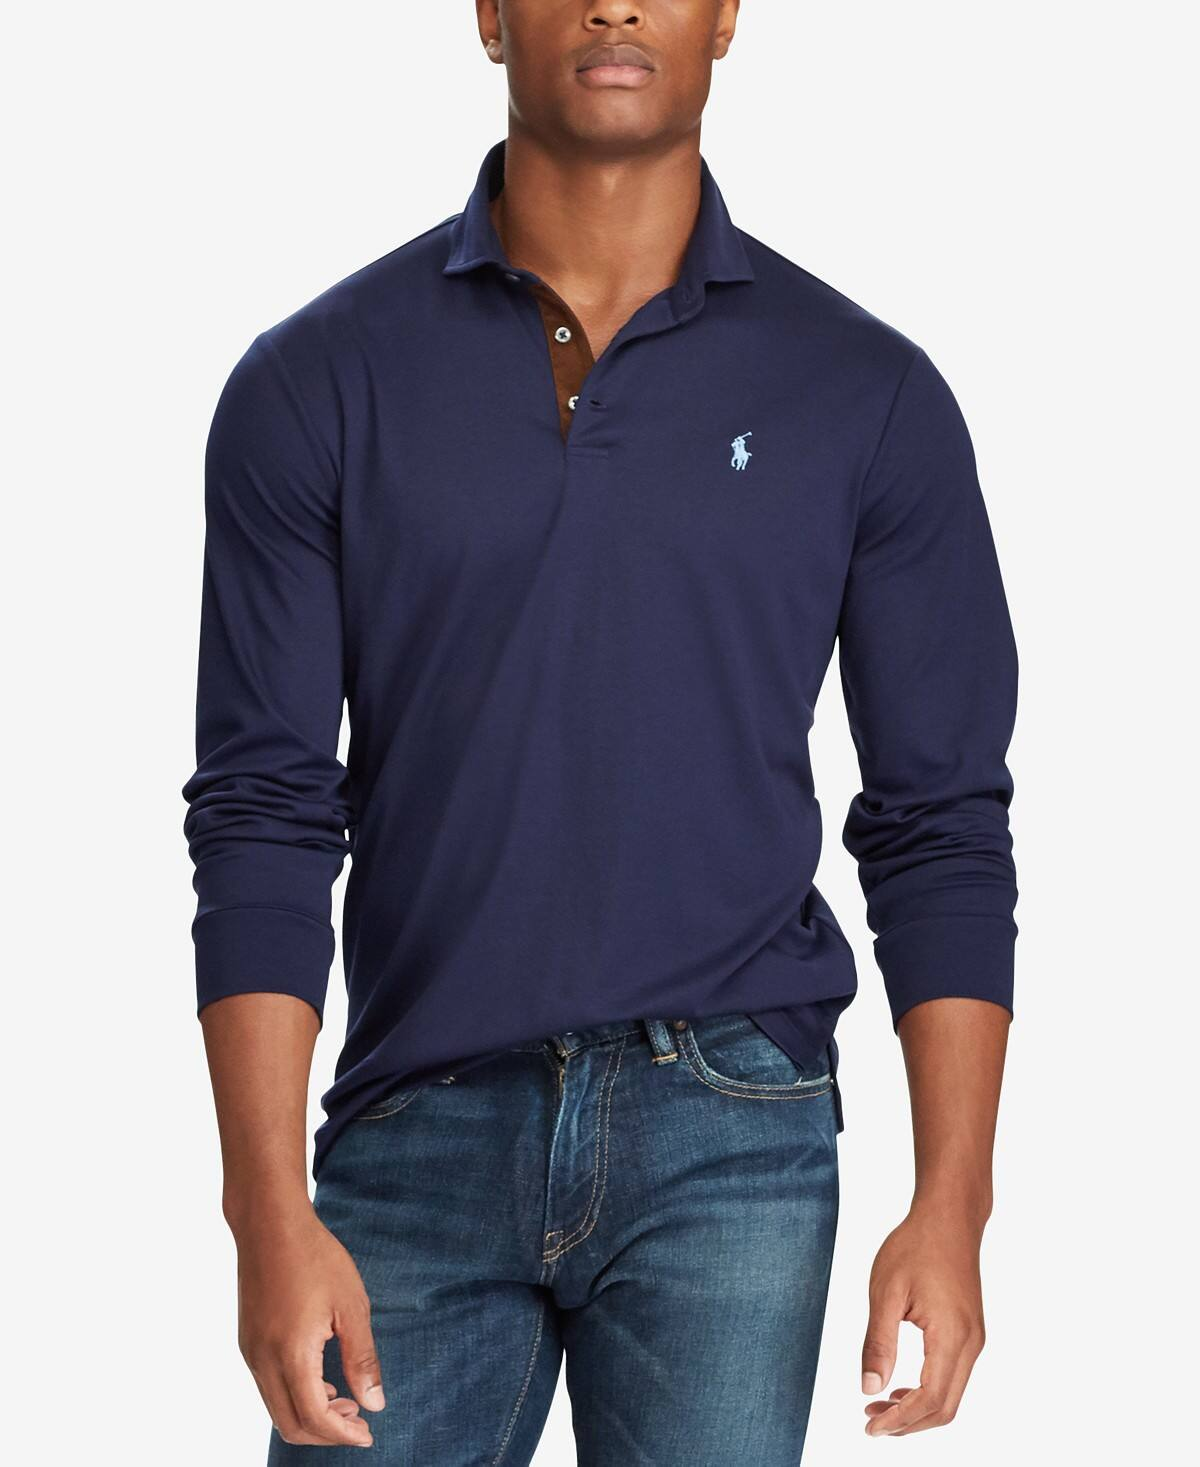 Mens Polo Ralph Lauren Classic Long Sleeve Polo Slickdeals